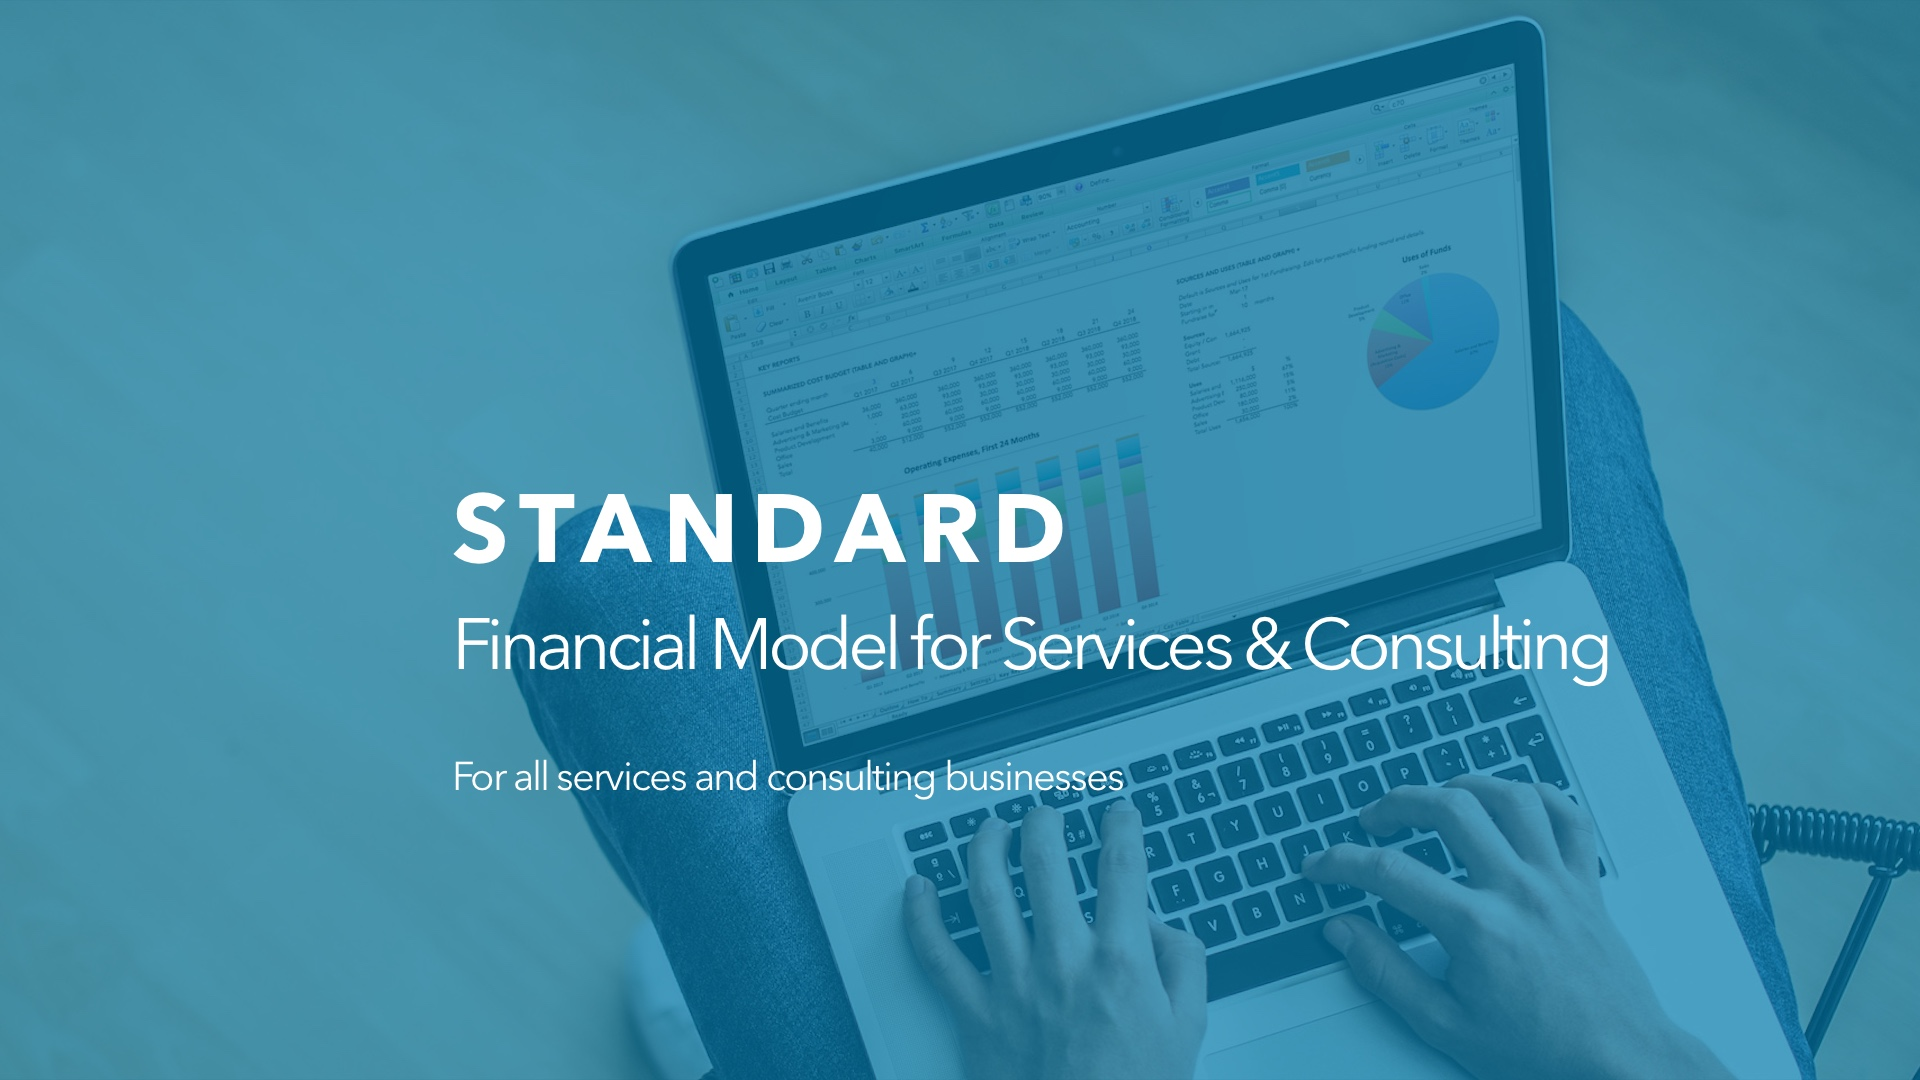 Services & Consulting Financial Model